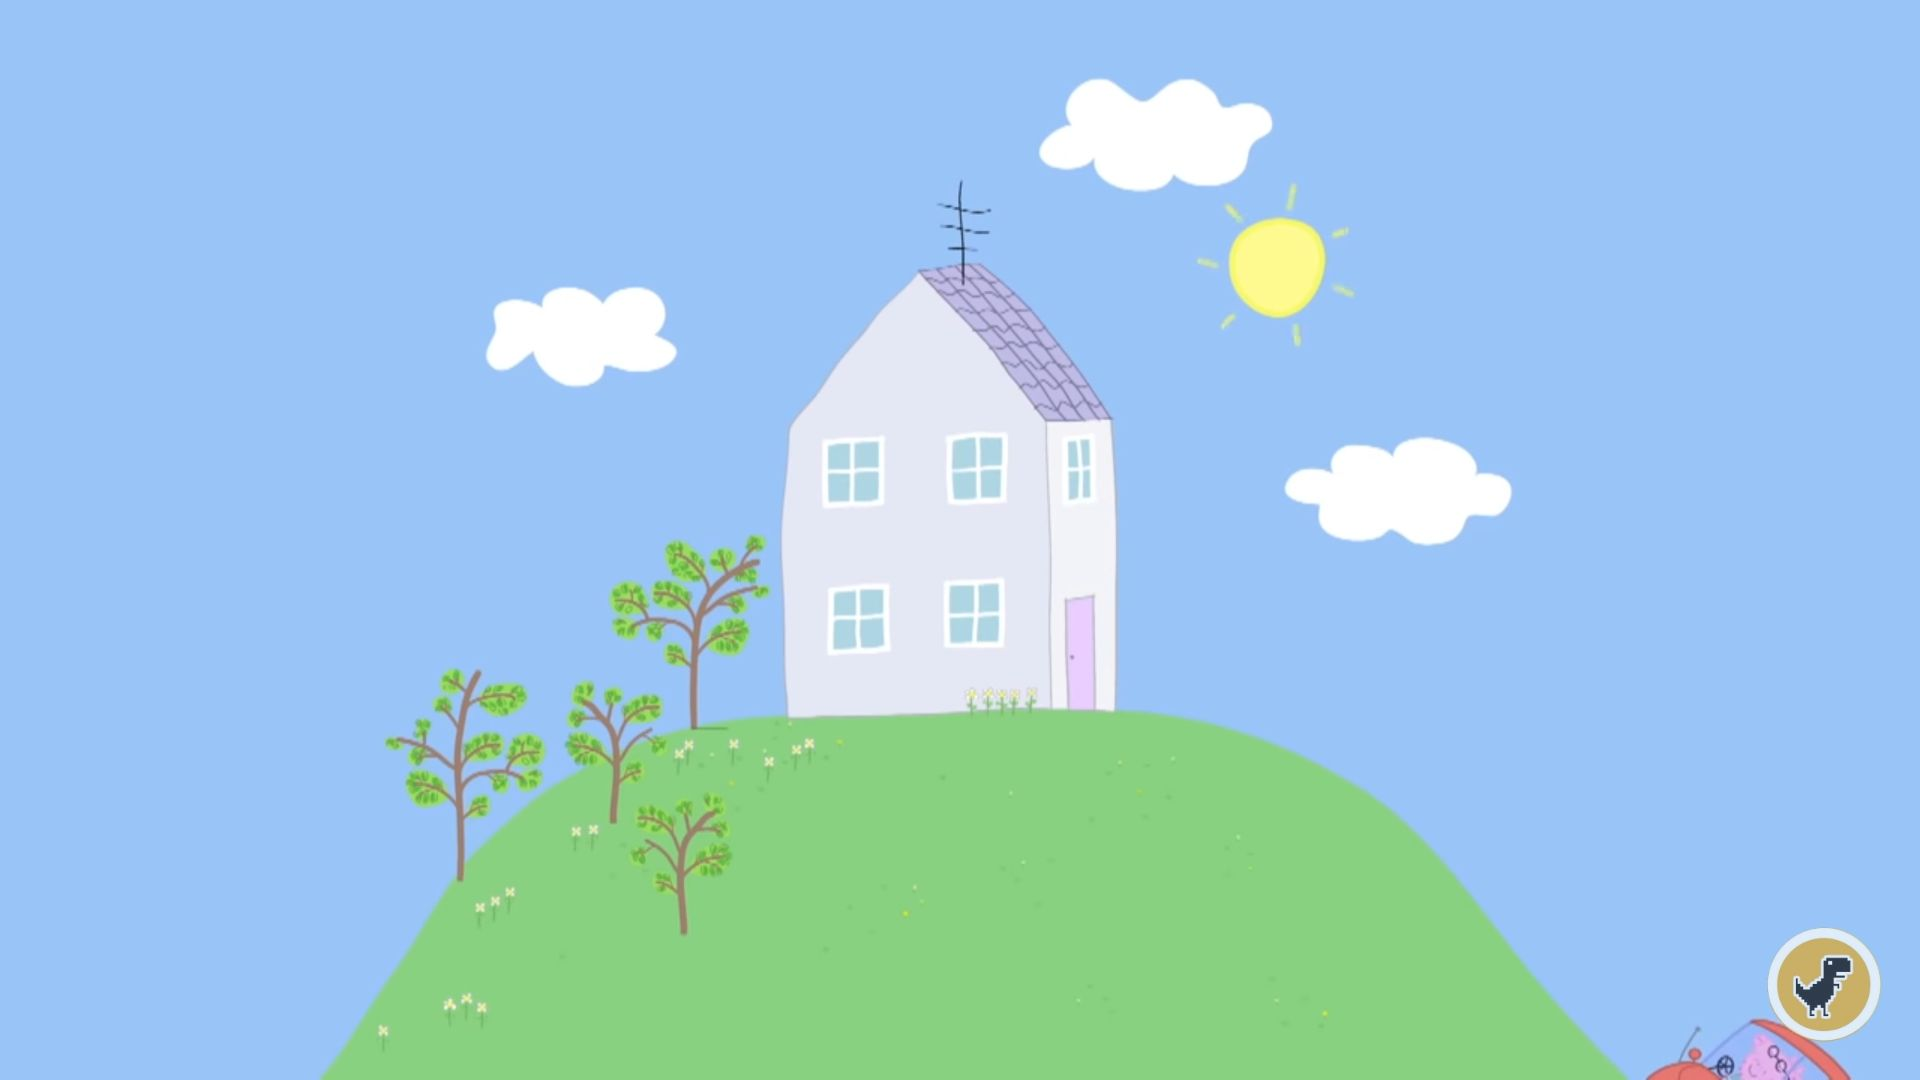 Peppa Pig House Wallpapers   Top Peppa Pig House Backgrounds 1920x1080